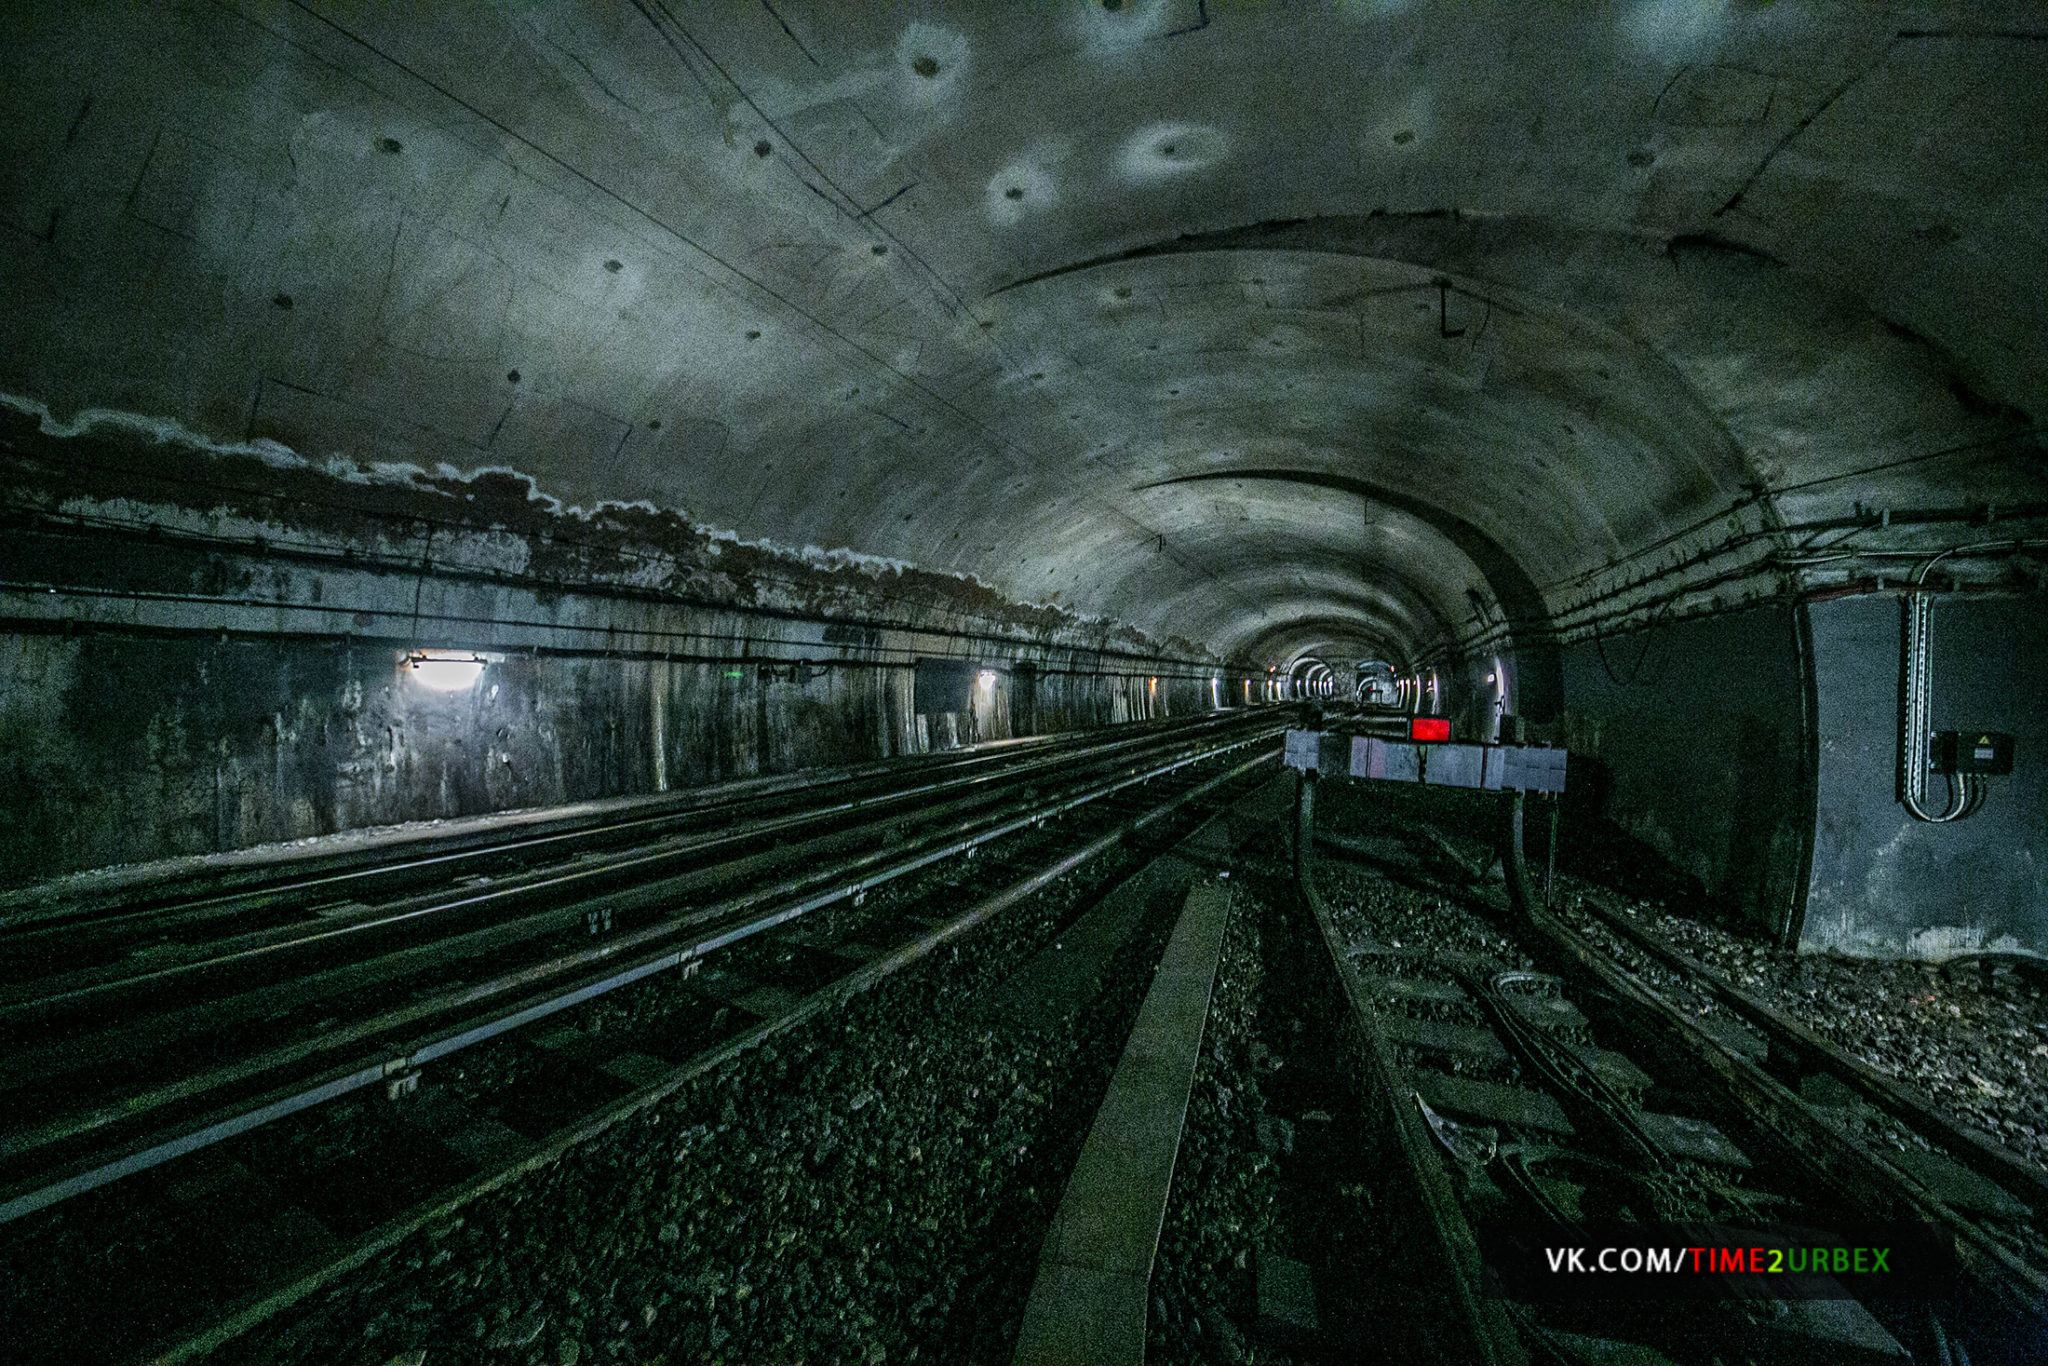 53 7 GHOST STATIONS OF THE PARIS METRO AND HOW TO GET INTO THE ILLEGALLY + UNUSUAL TUNNELS + RER